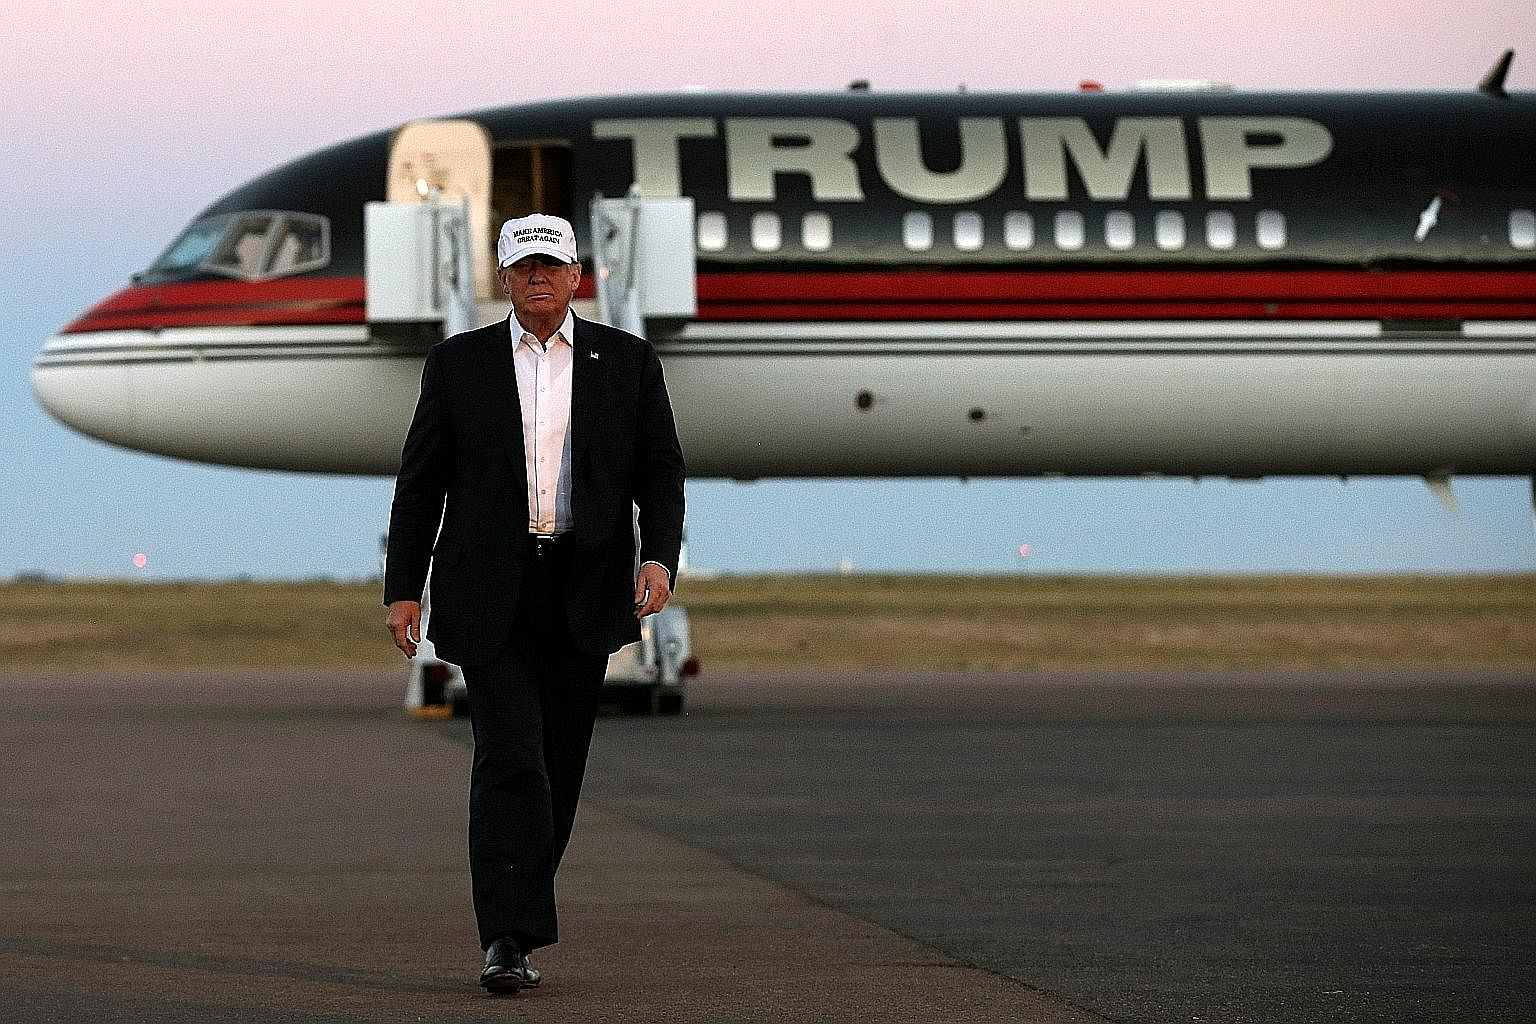 Mr Trump arriving in Colorado for a campaign rally on Saturday. Routine falsehoods, unfounded claims and inflammatory language have long been staples of his anything-goes campaign.